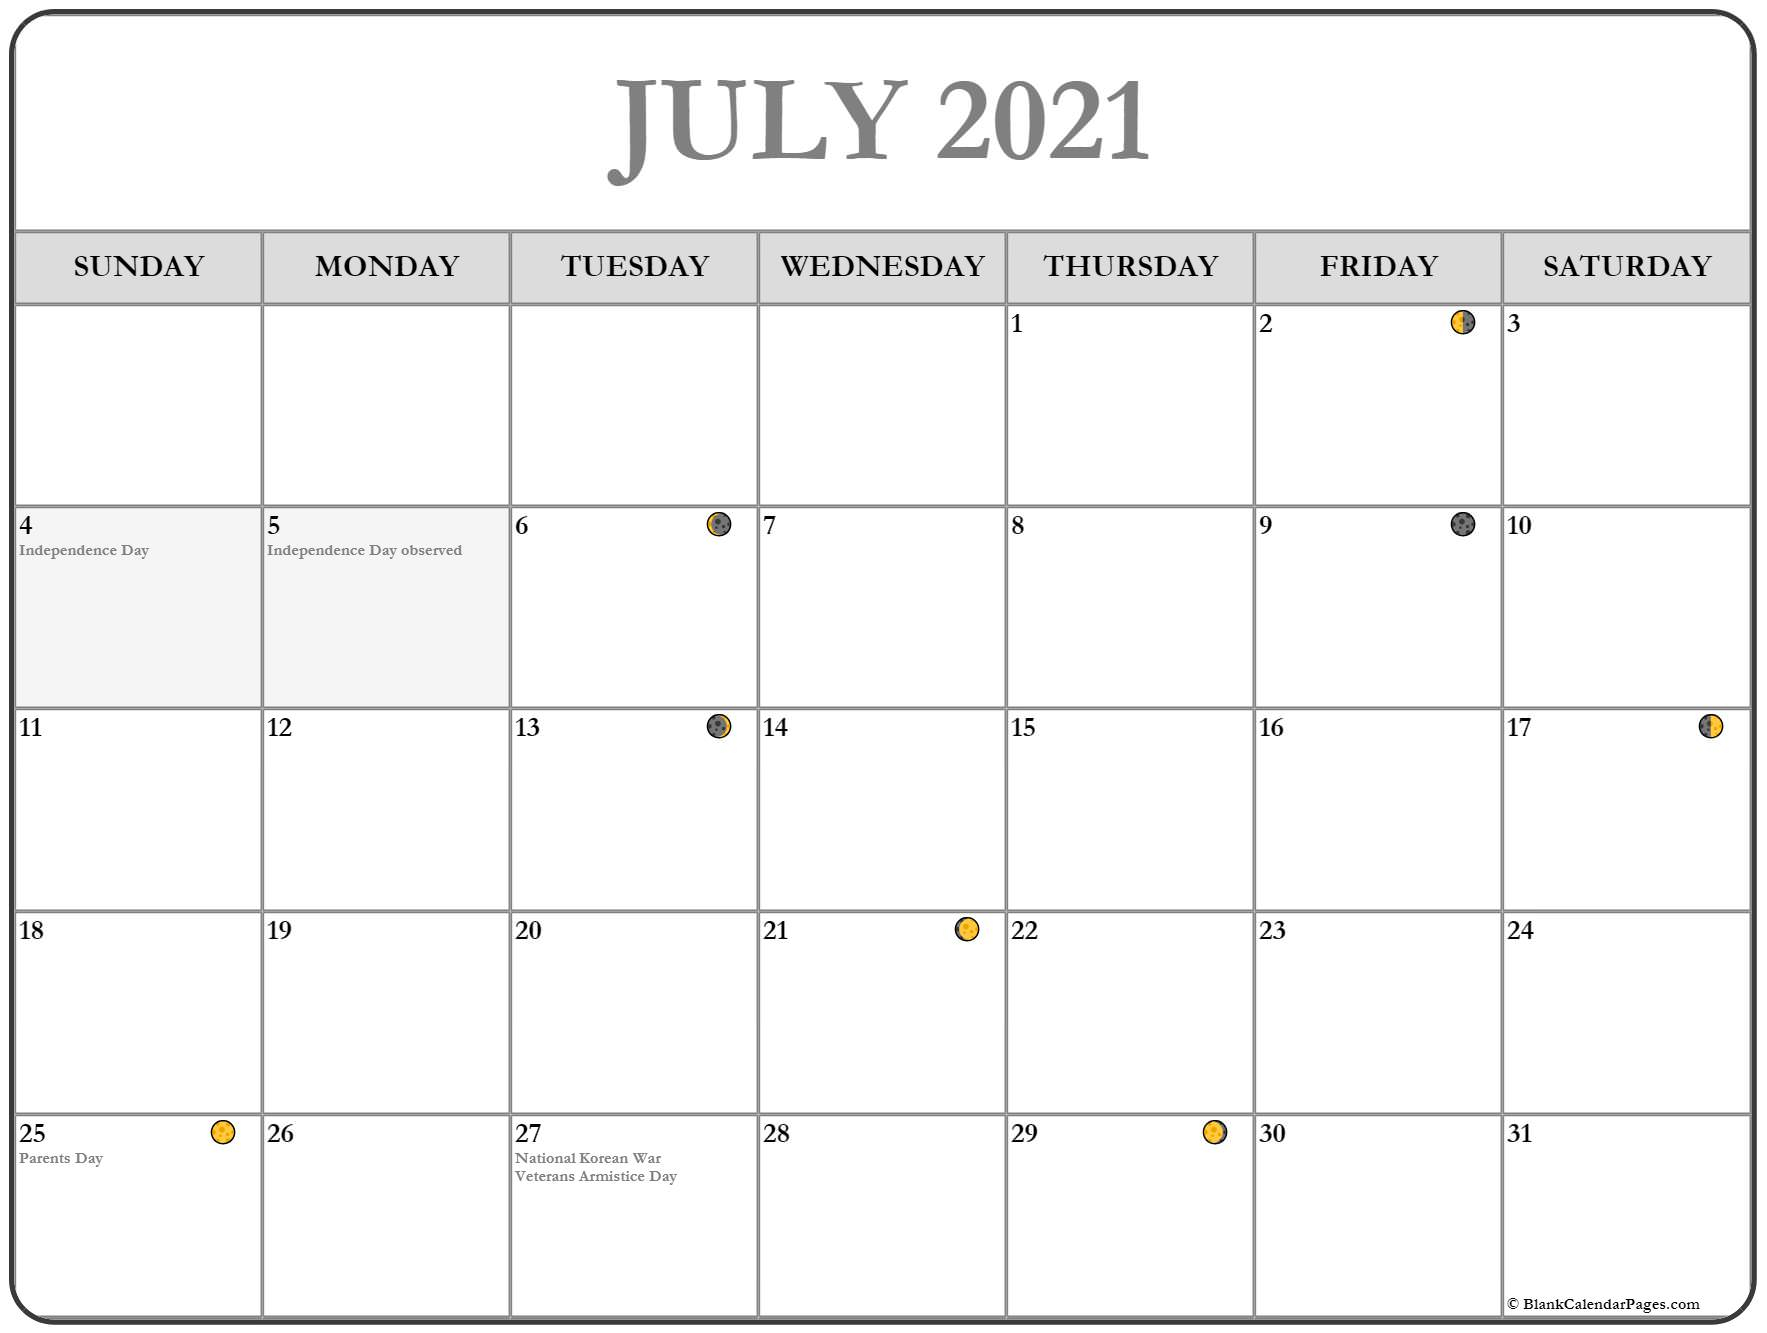 July 2021 Lunar Calendar | Moon Phase Calendar Regarding Moon Phase Deer Hunting Chart 2021